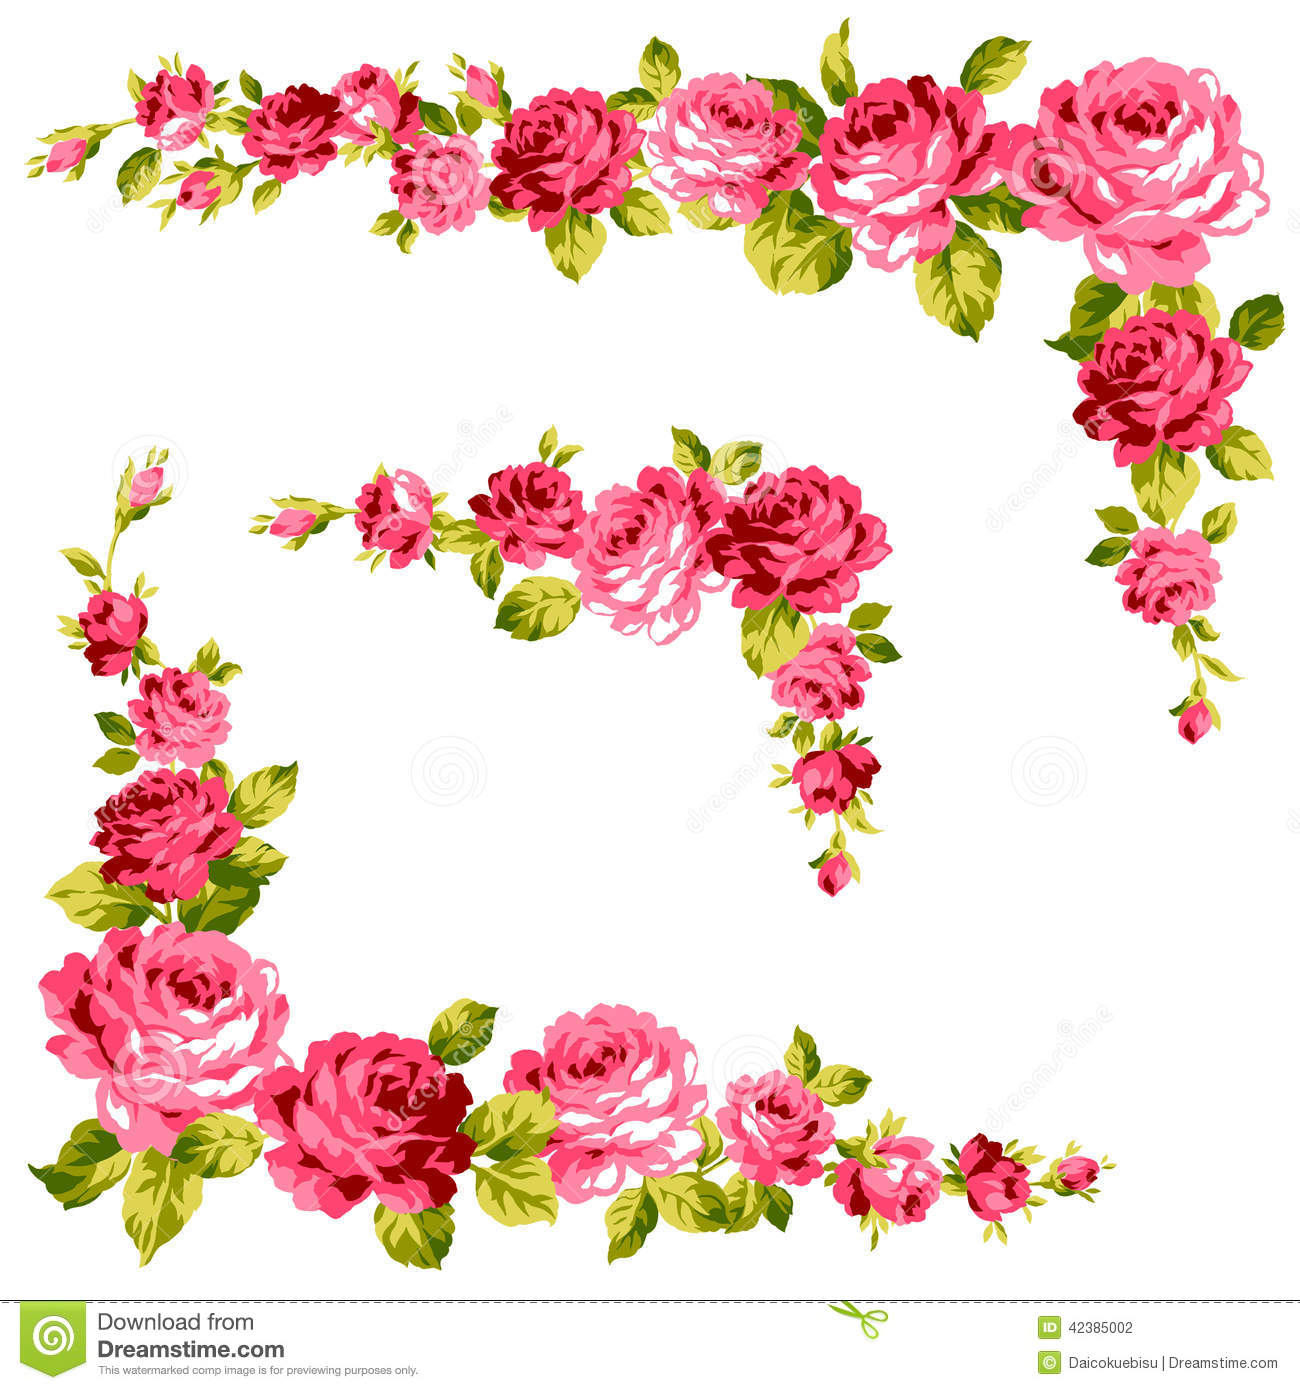 Frame of the rose stock illustration. Illustration of display - 42385002